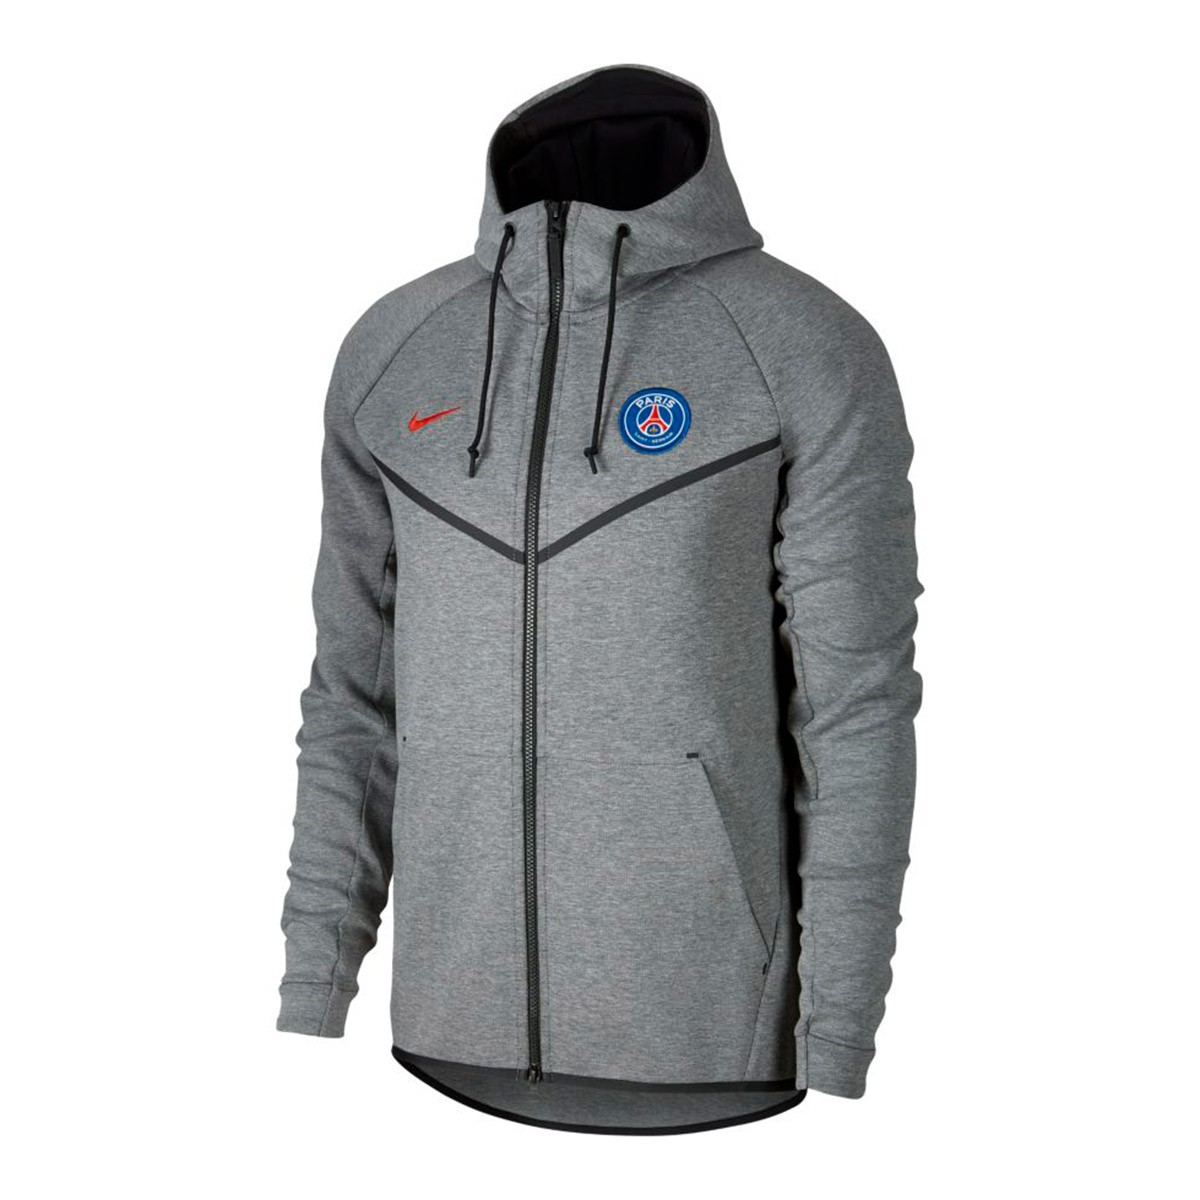 054e779ca Nike Paris Saint-Germain NSW 2017-2018 Sweatshirt. Carbon heather-Rush ...